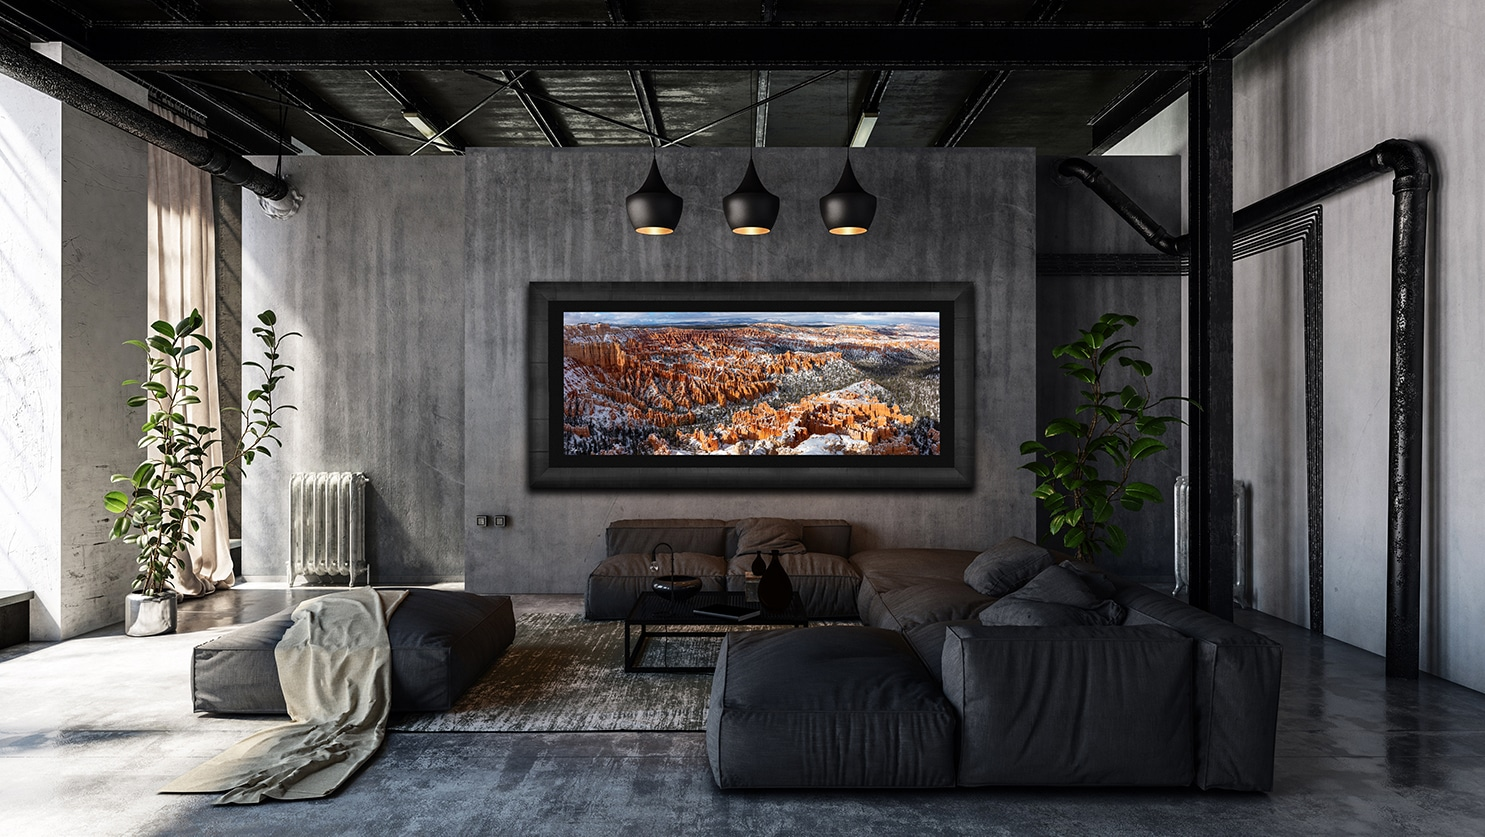 Large framed photo of Bryce Canyon National Park displayed above couch in living room of luxury home